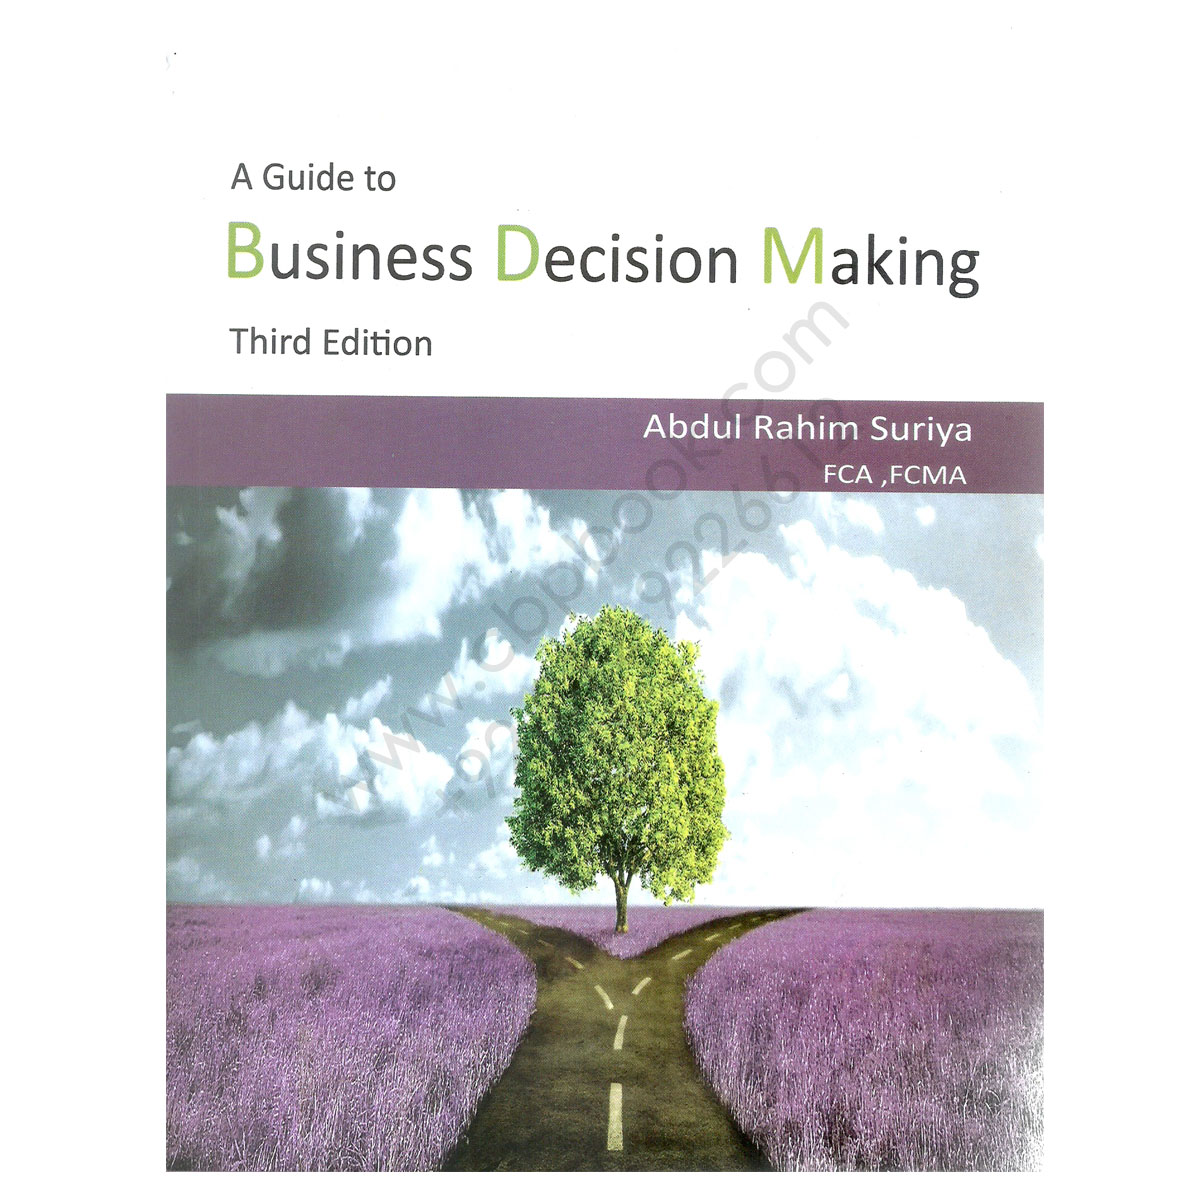 A Guide To Business Decision Making 3rd Edition by Abdul Rahim Surya FCA , FCMA Star Book Centre